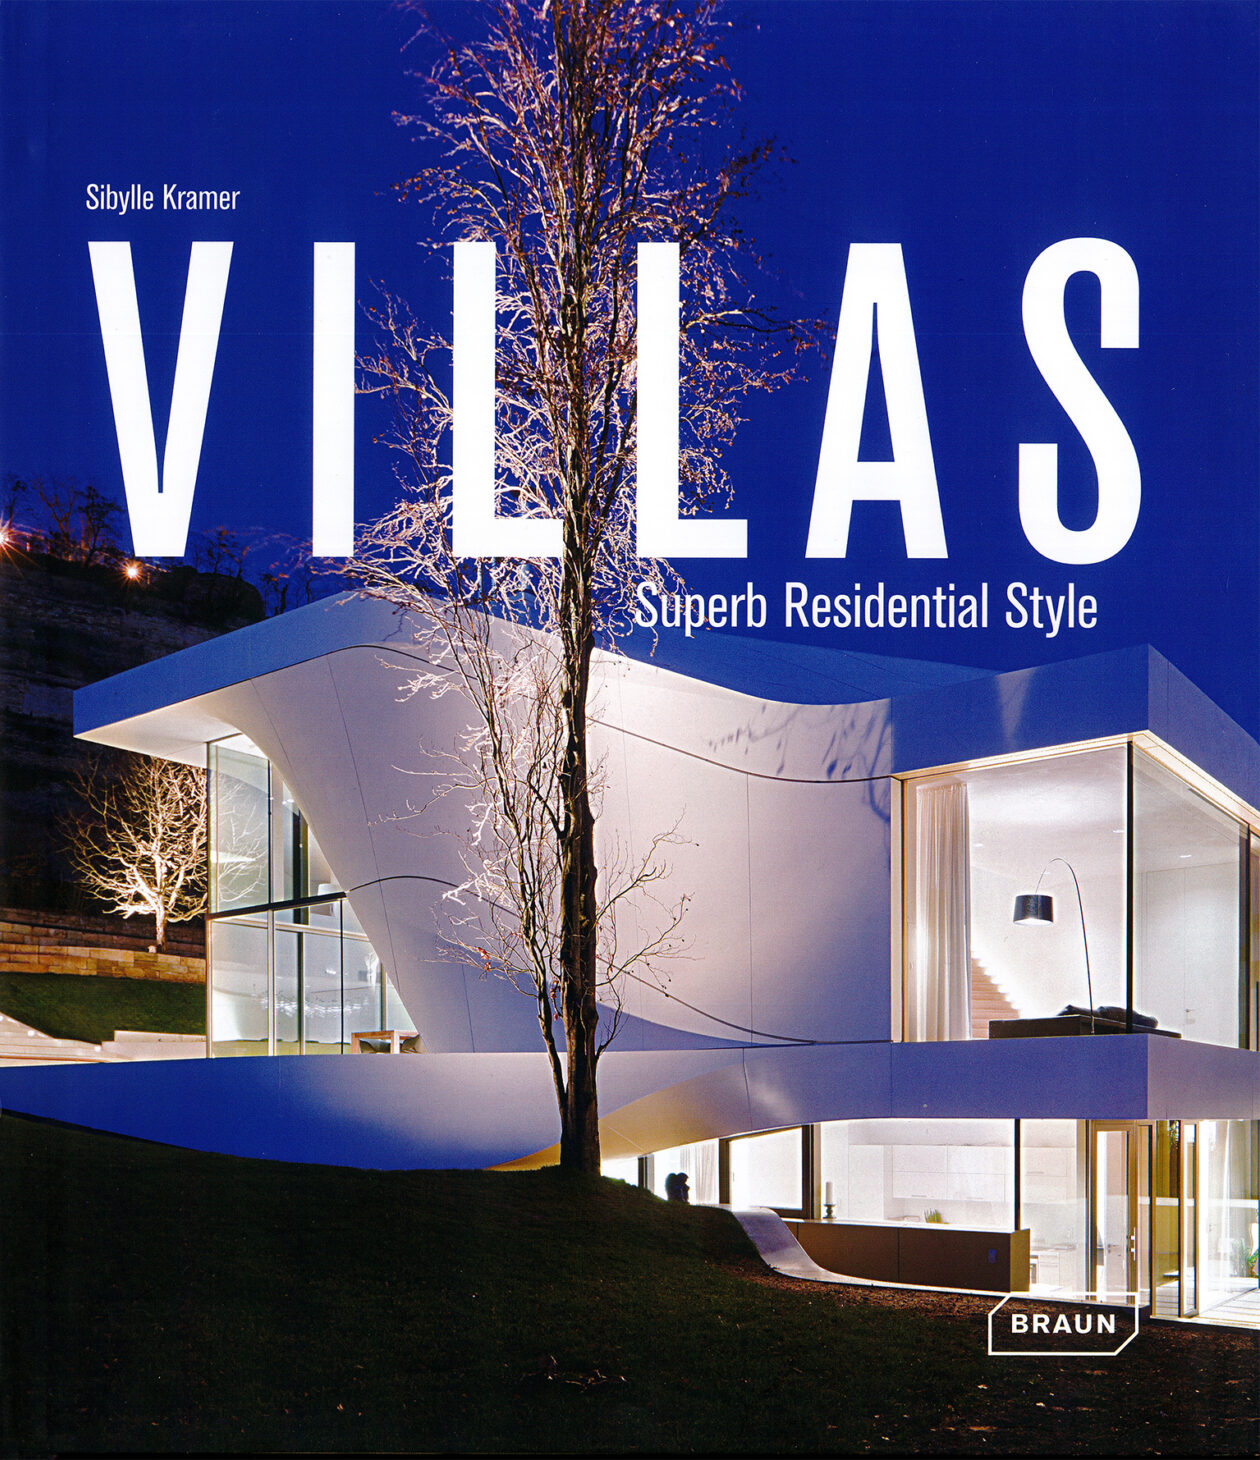 Villas Superb Residential Style 01